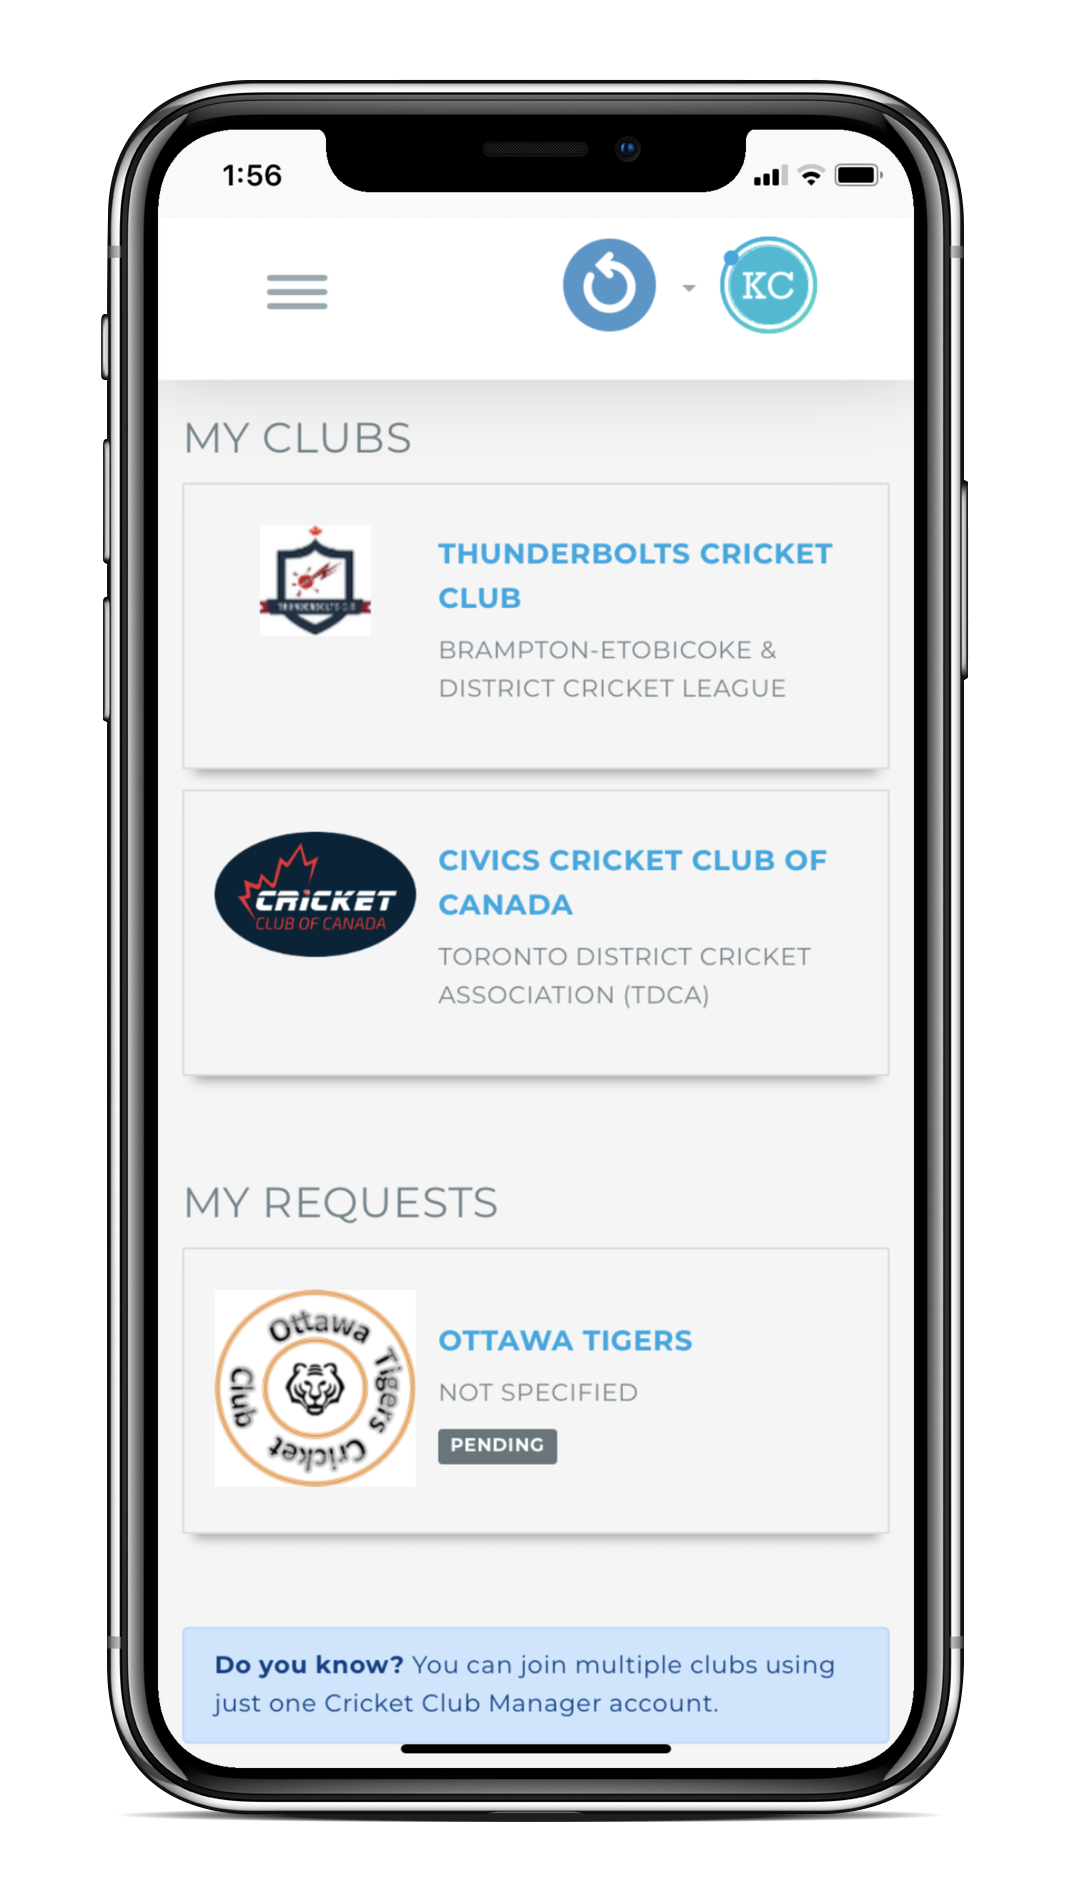 Cricket Club Manager - My Clubs